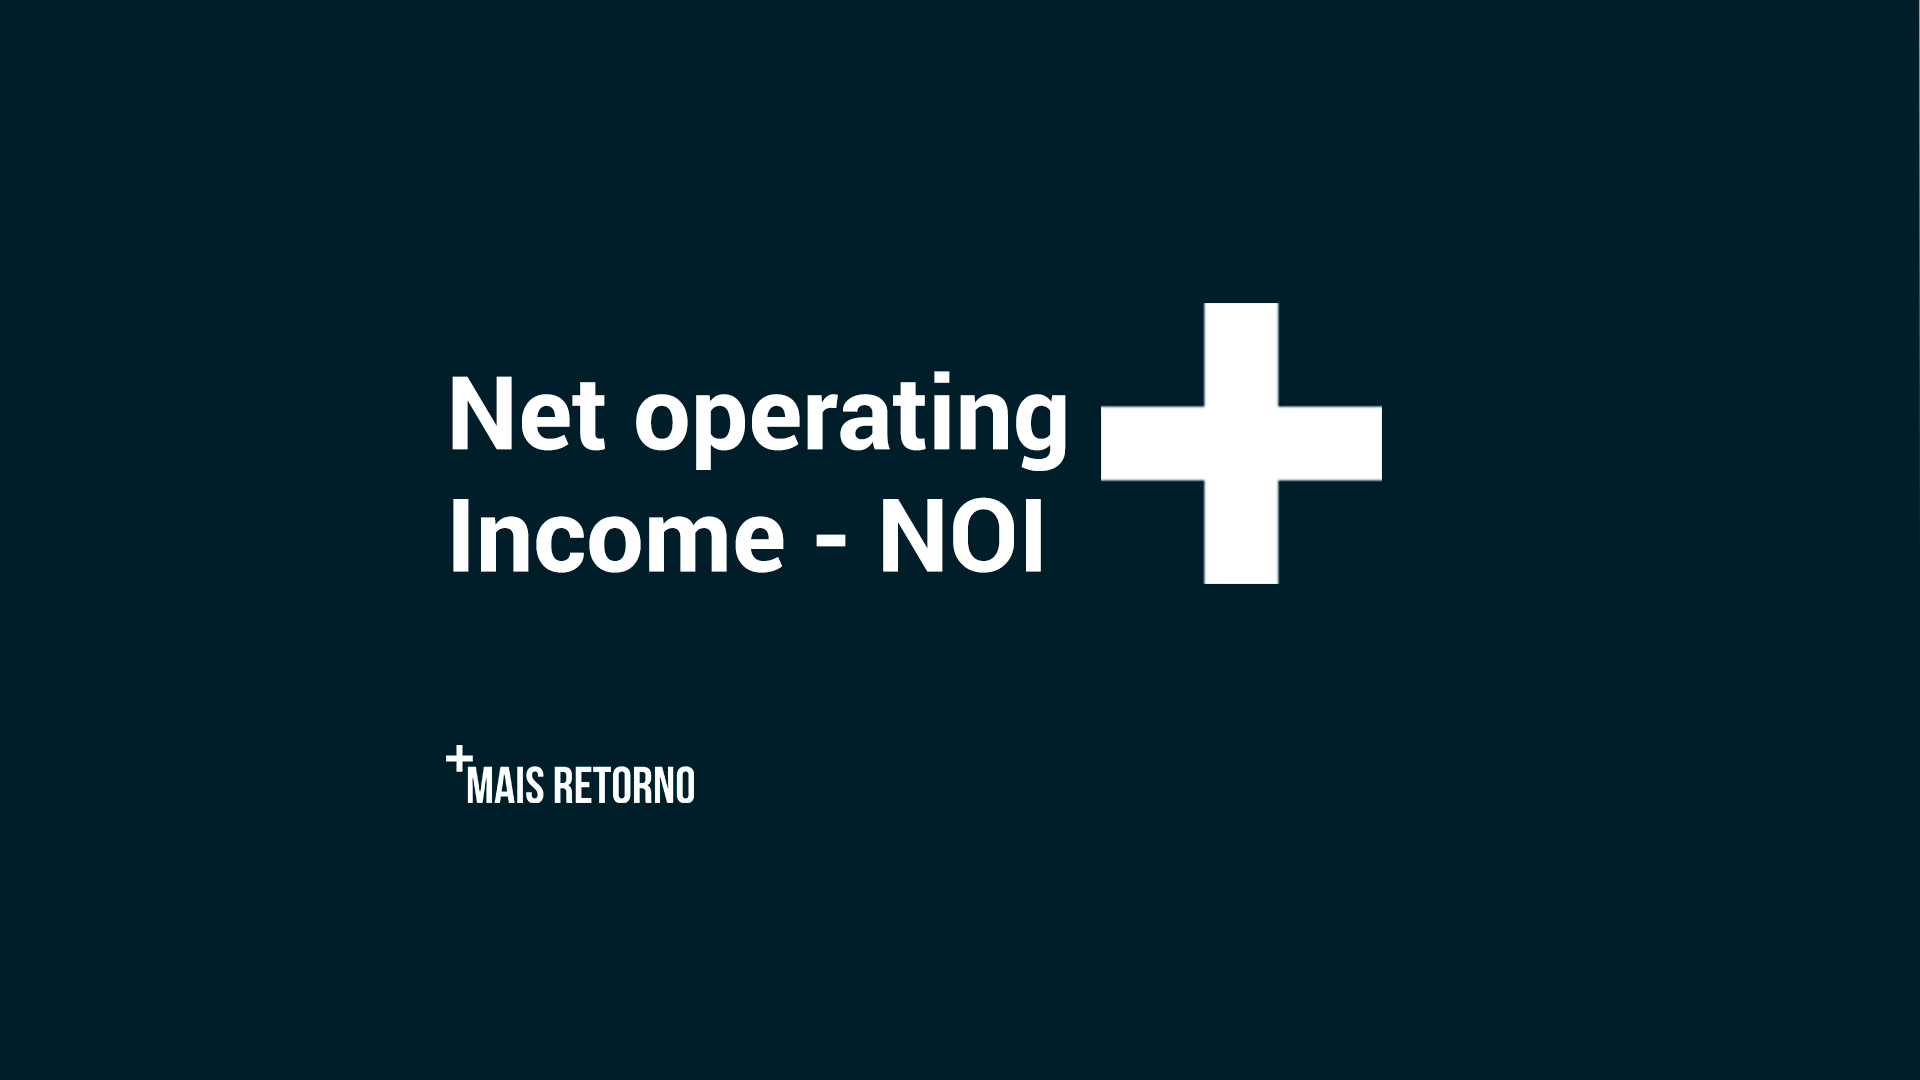 Net operating income - NOI